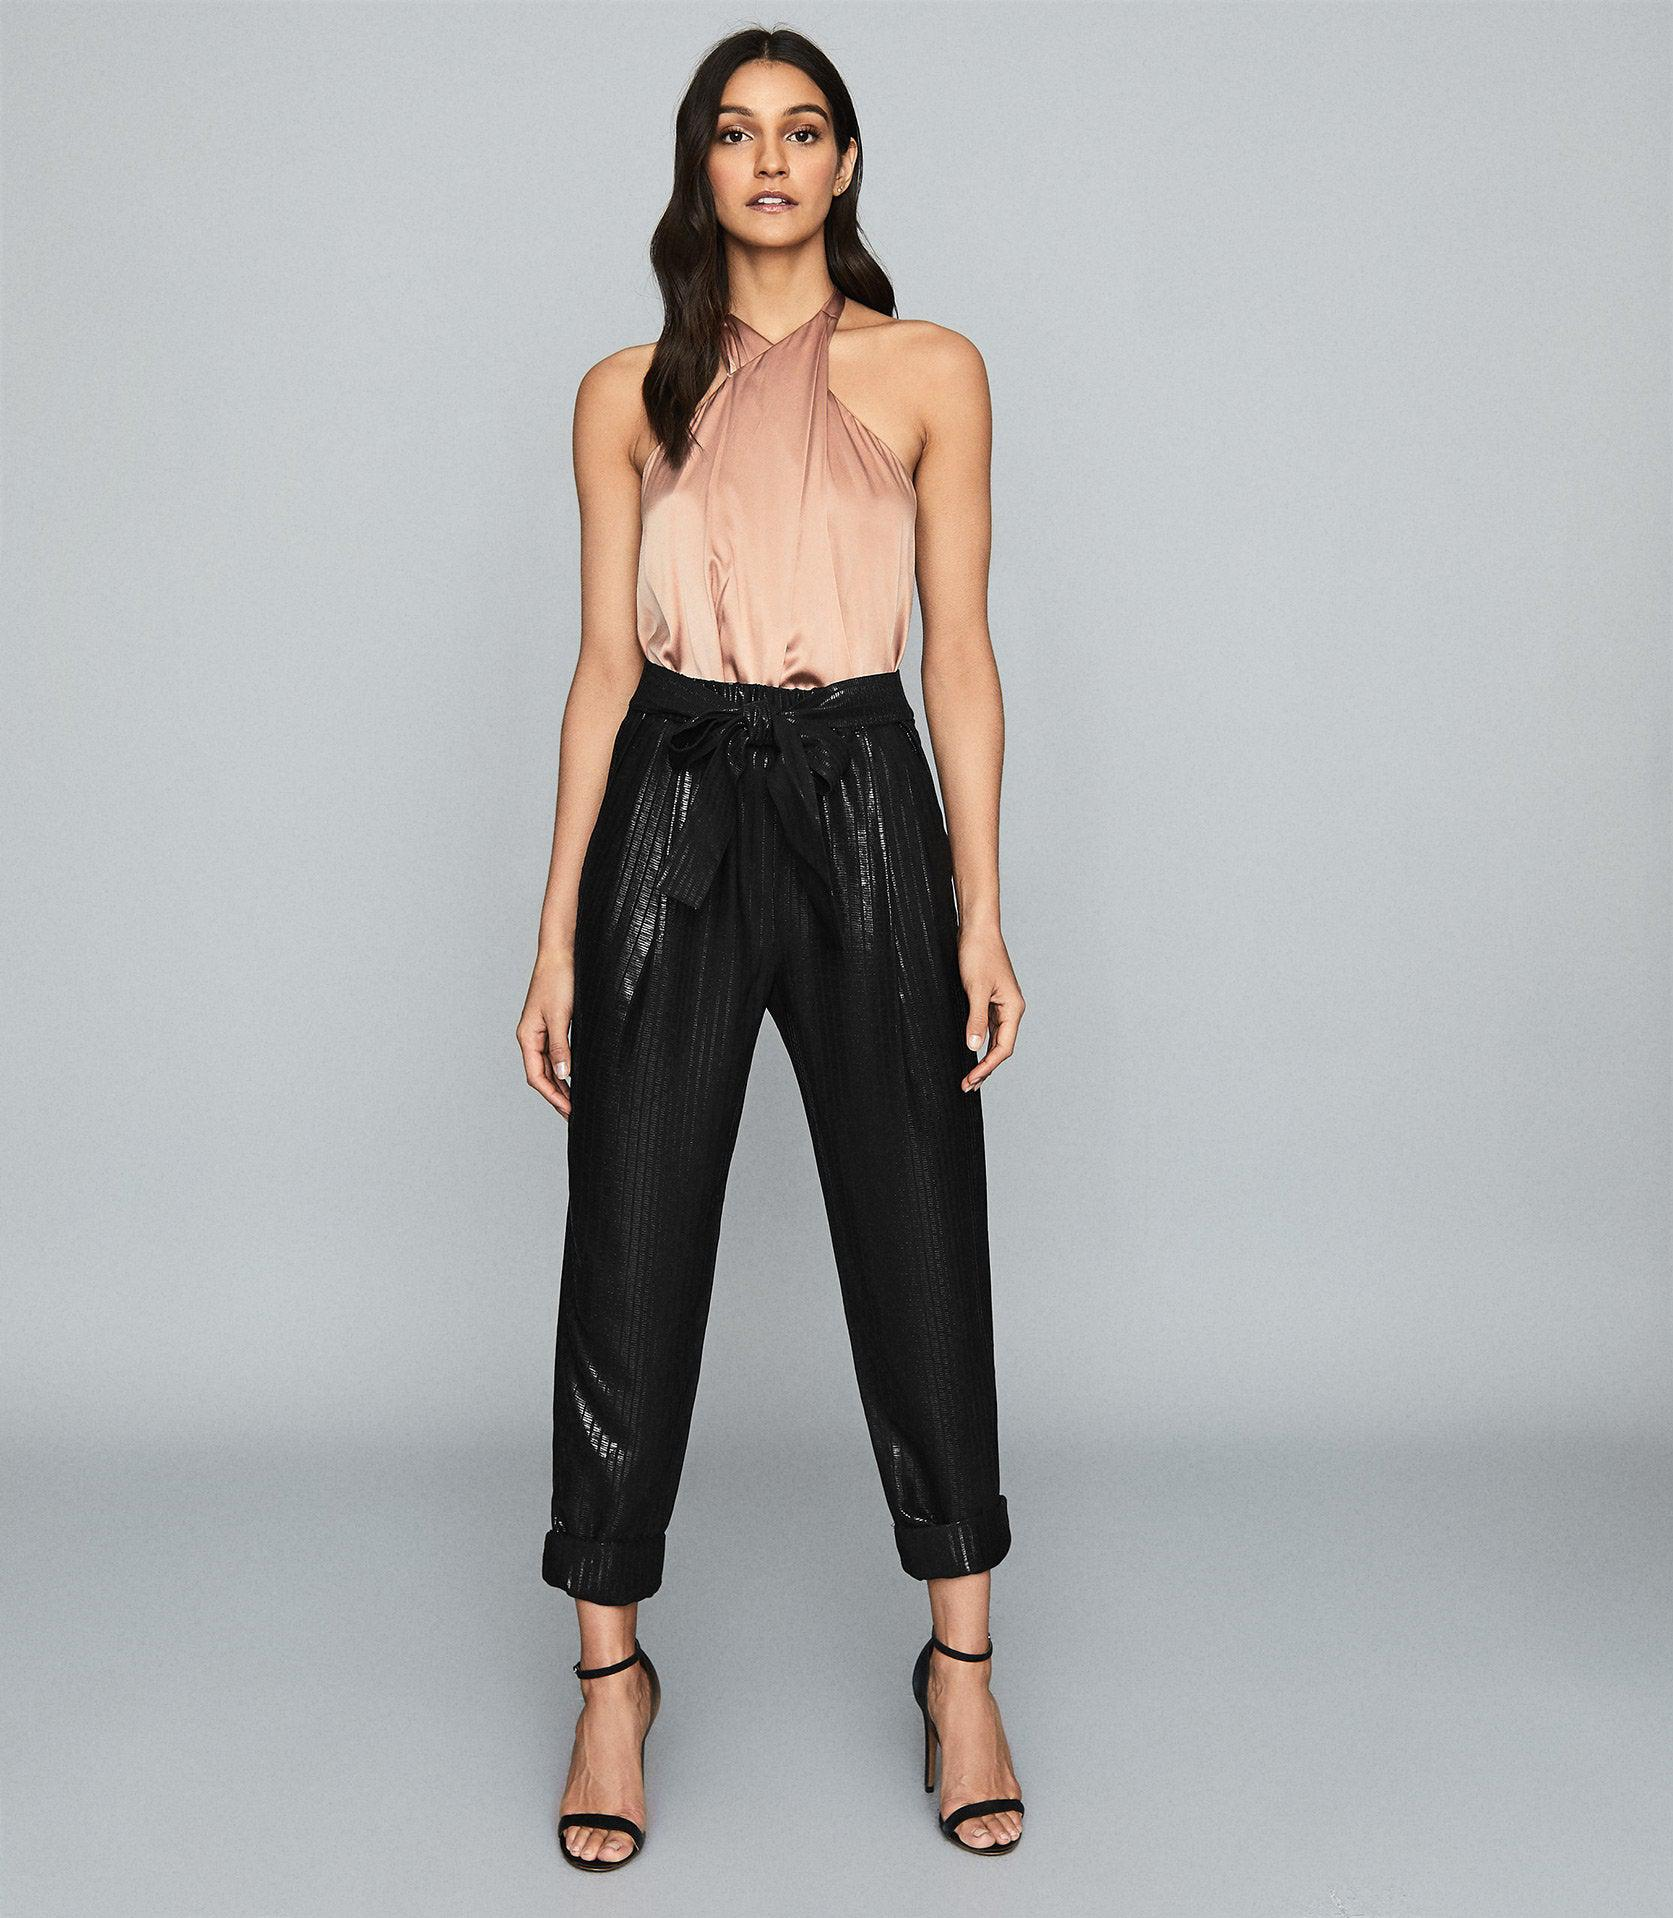 PENNIE - TAPERED SHIMMER TROUSERS